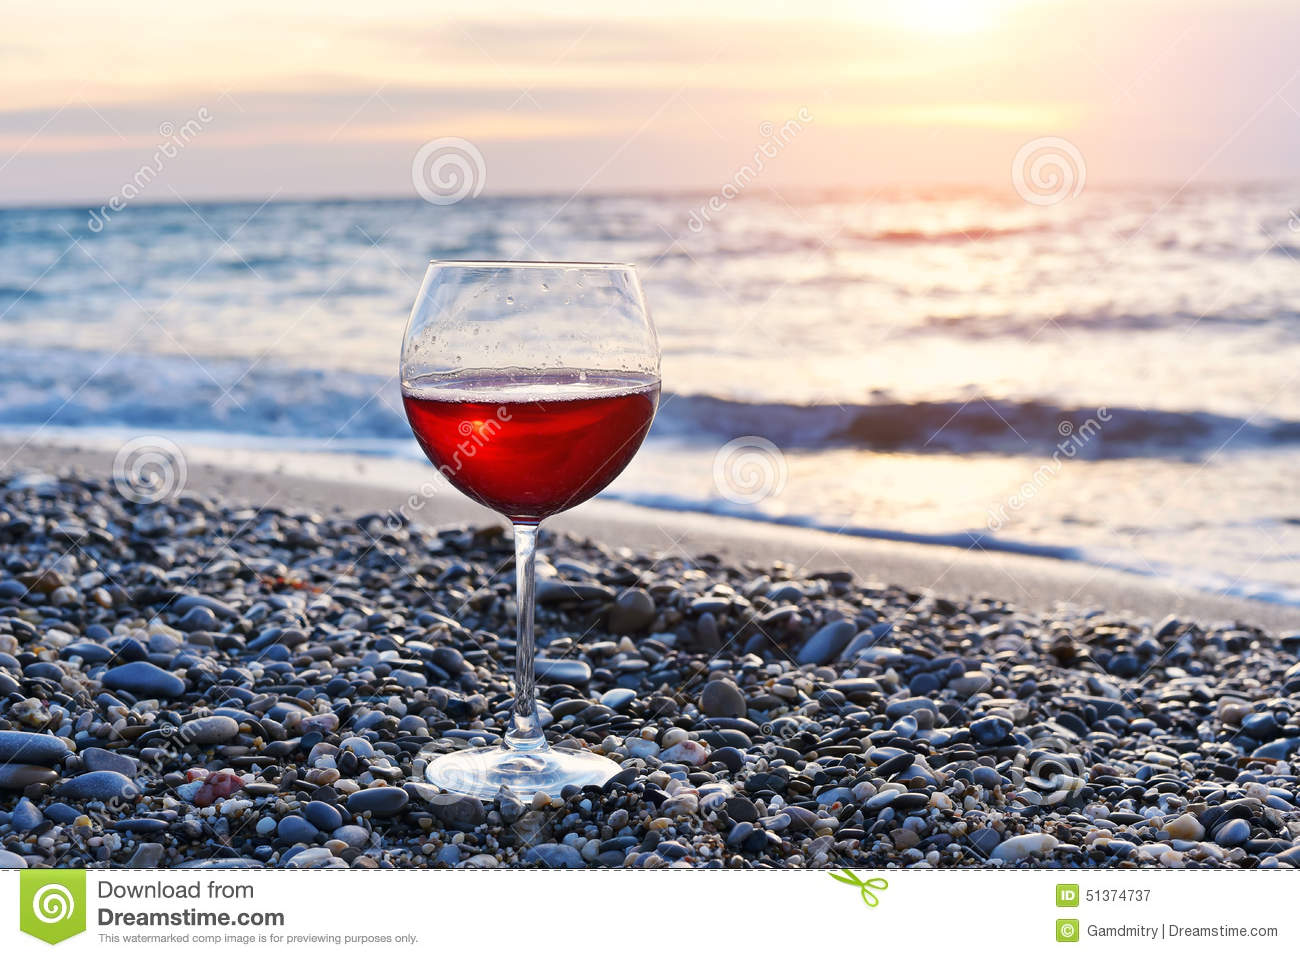 Romantic glass of wine sitting on the beach at colorful sunset, Glass of red wine against sunset, red wine on the sea ocean